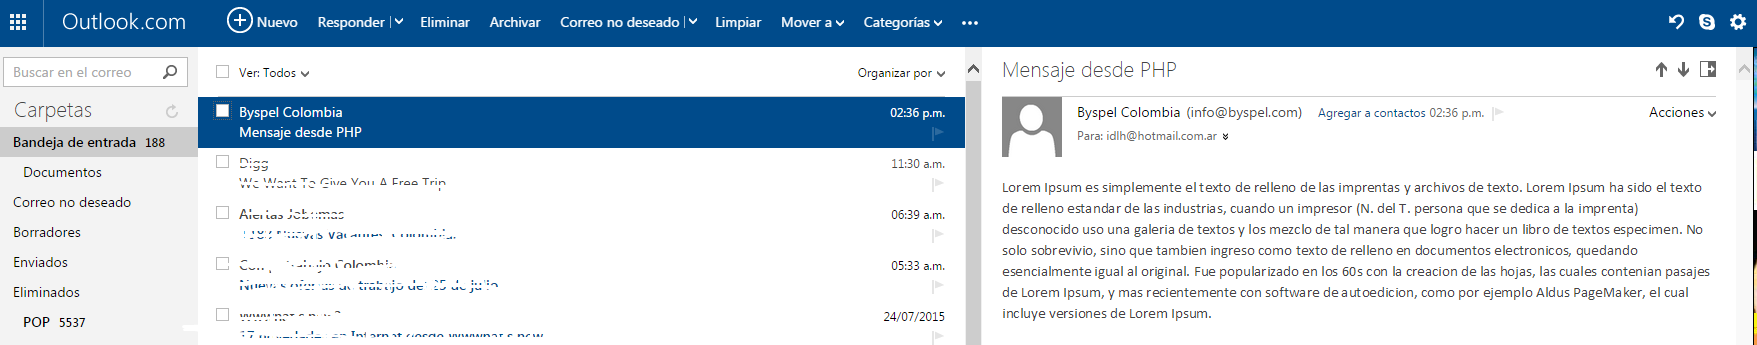 email desde php